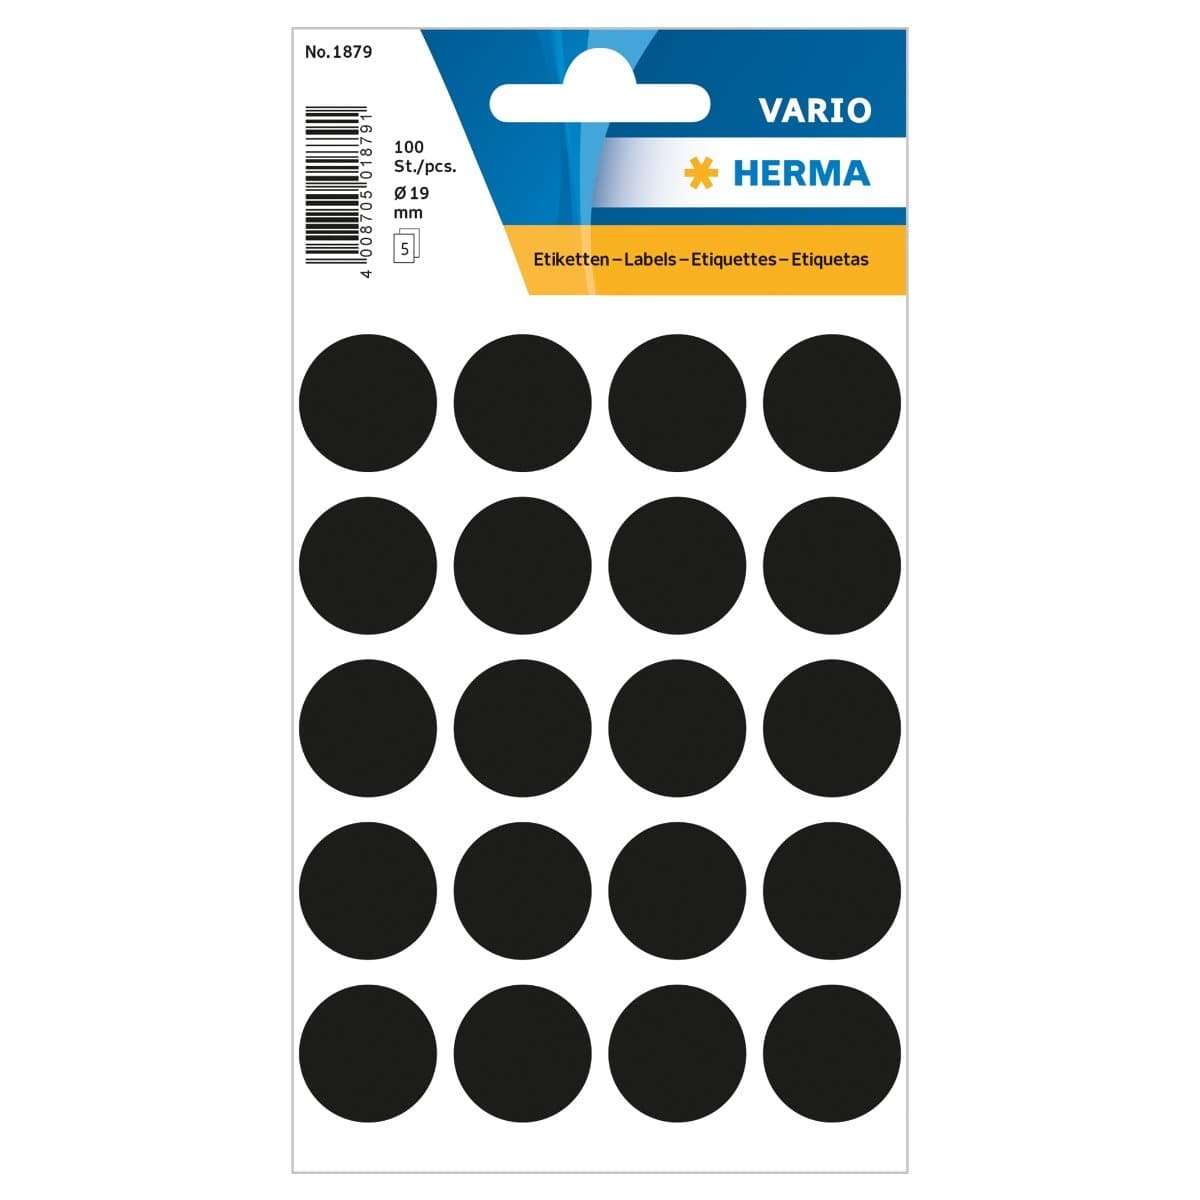 Herma Vario Sticker Color Dots, 19 mm, 100/pack, Black